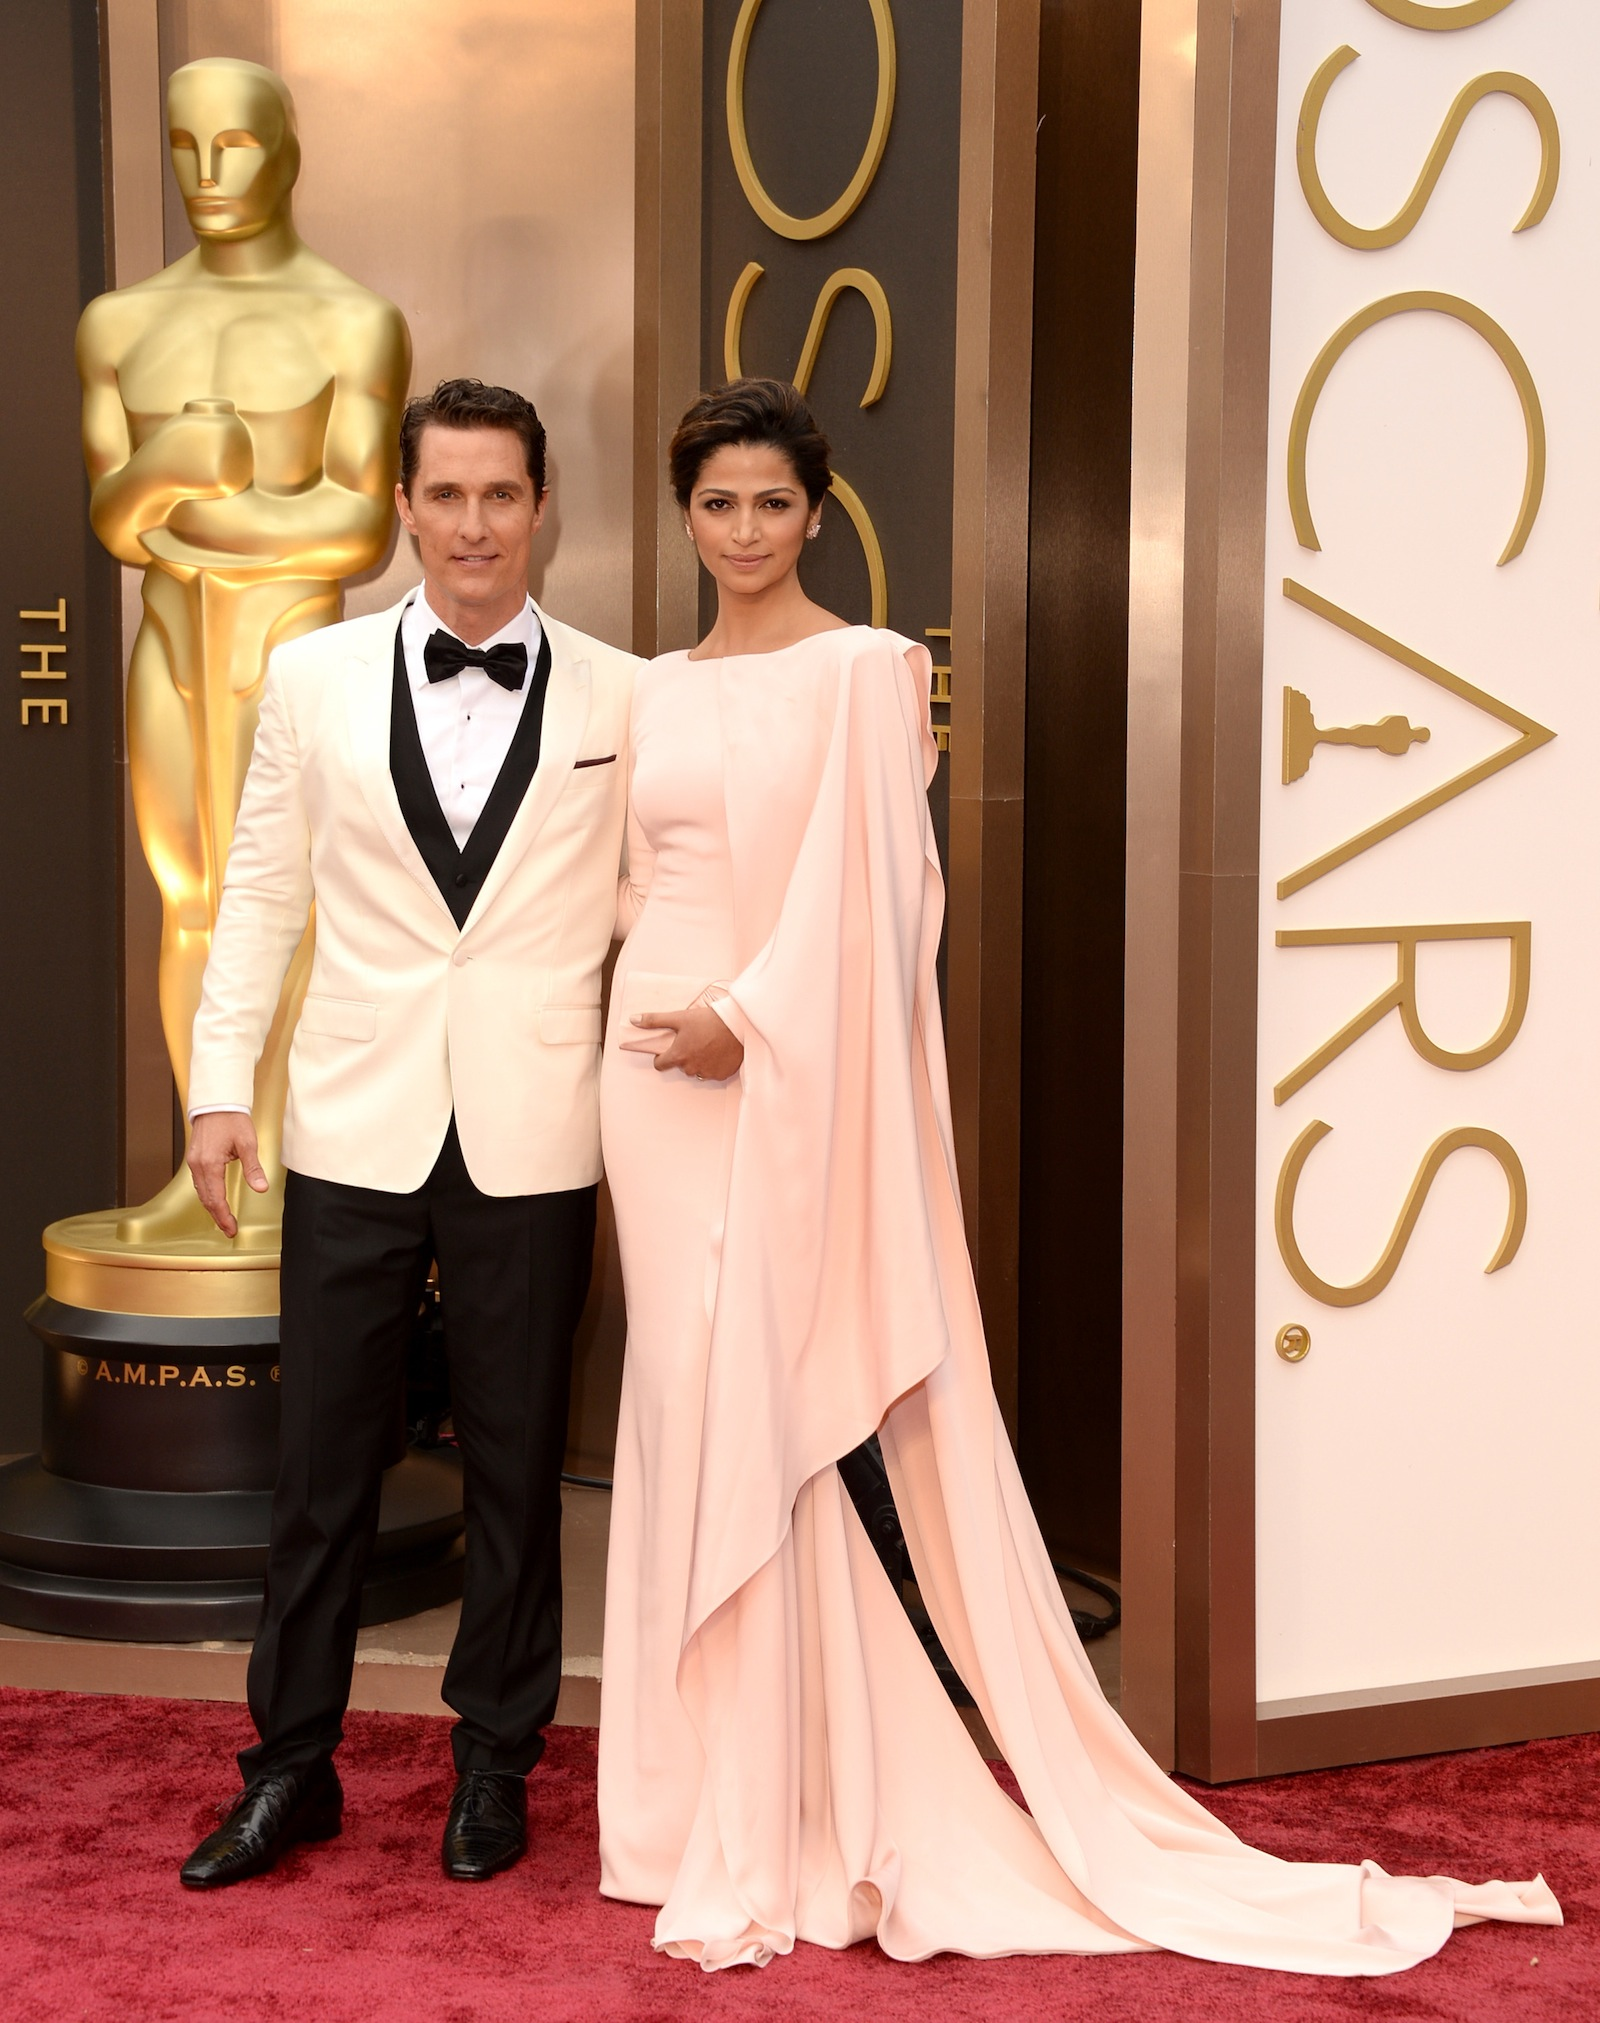 The king and queen of the pastel prom: Matthew McConaughey and wife Camila Alves.